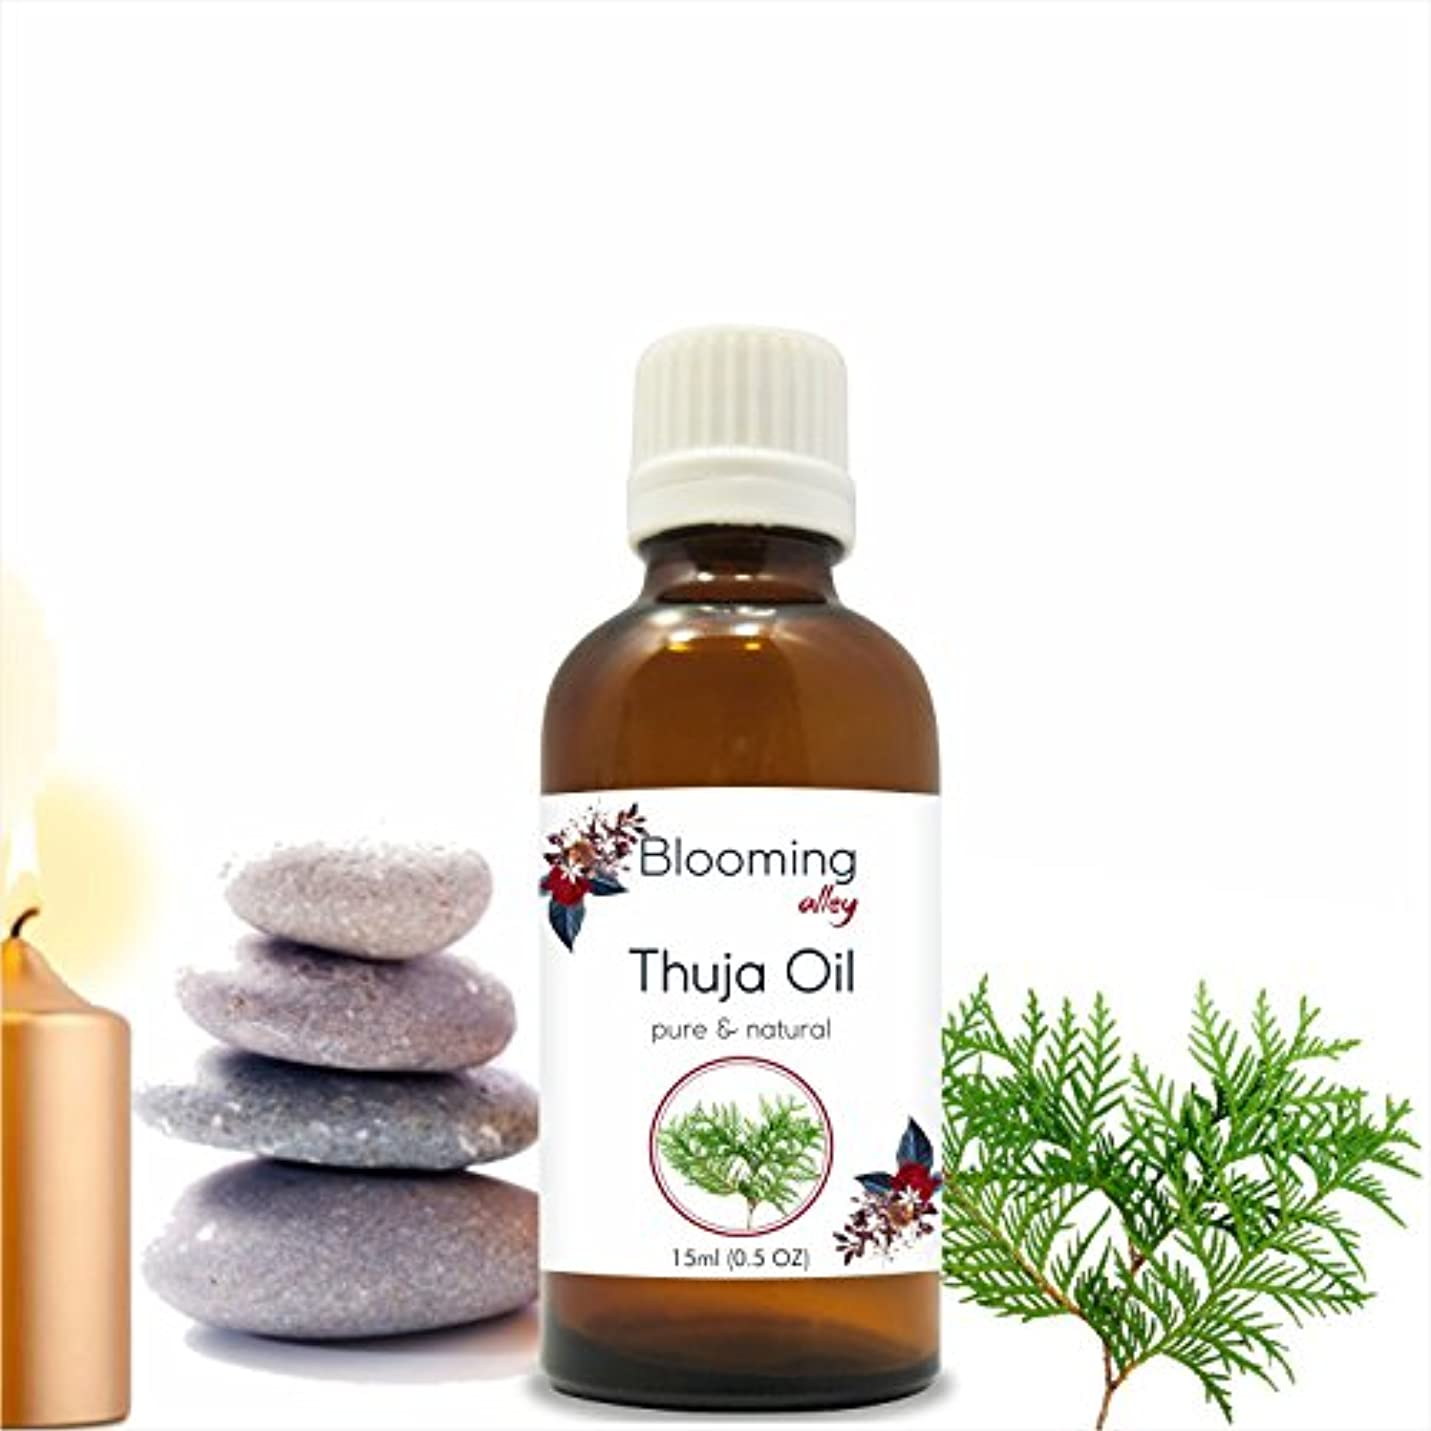 血色の良いスポーツ鷲Thuja Oil(Thuja Orientali) Essential Oil 15 ml or .50 Fl Oz by Blooming Alley